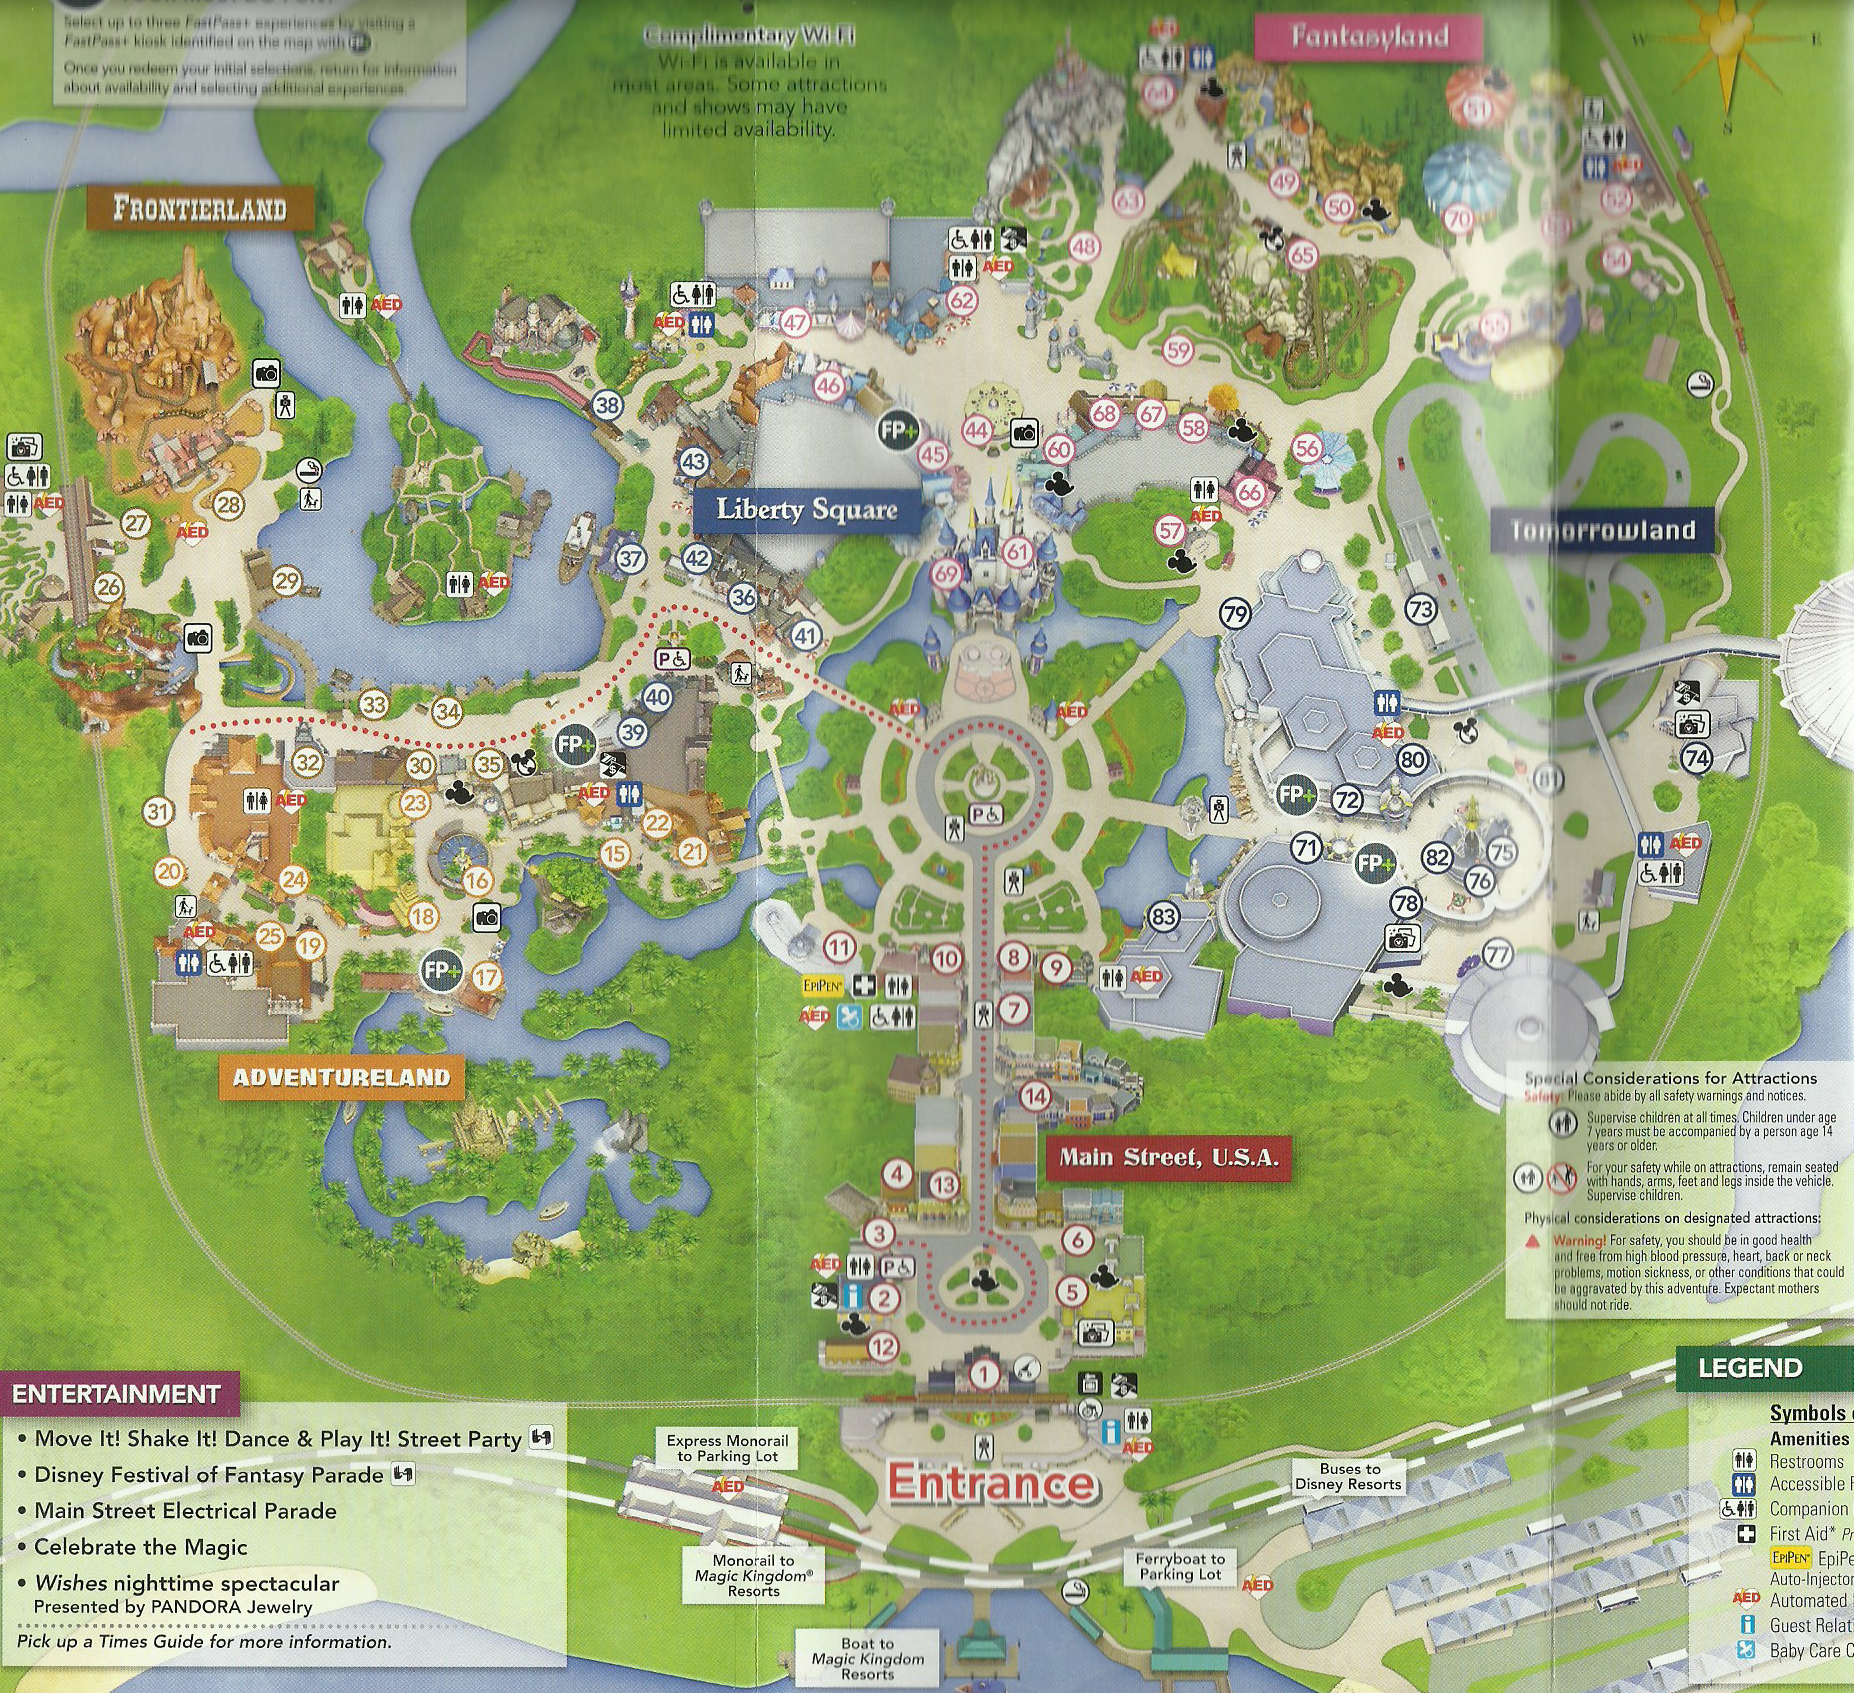 Figure 6. Disney World 45th anniversary map dated October 1, 2016